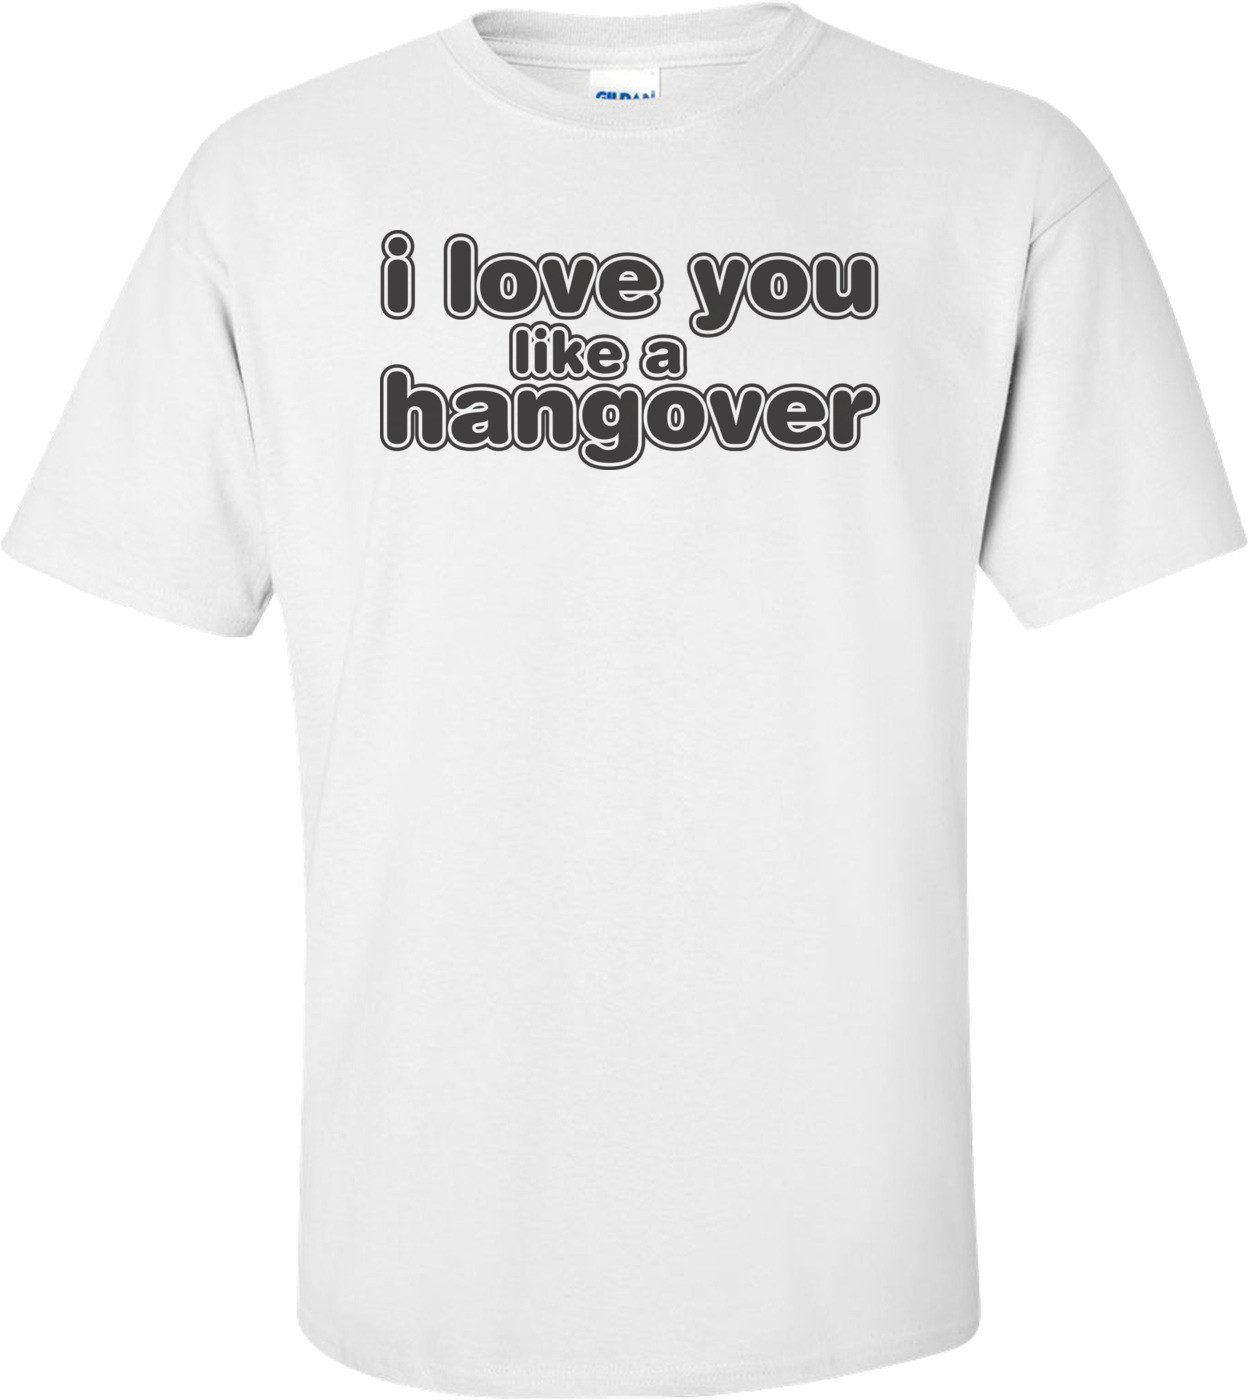 I Love You Like A Hangover T-shirt